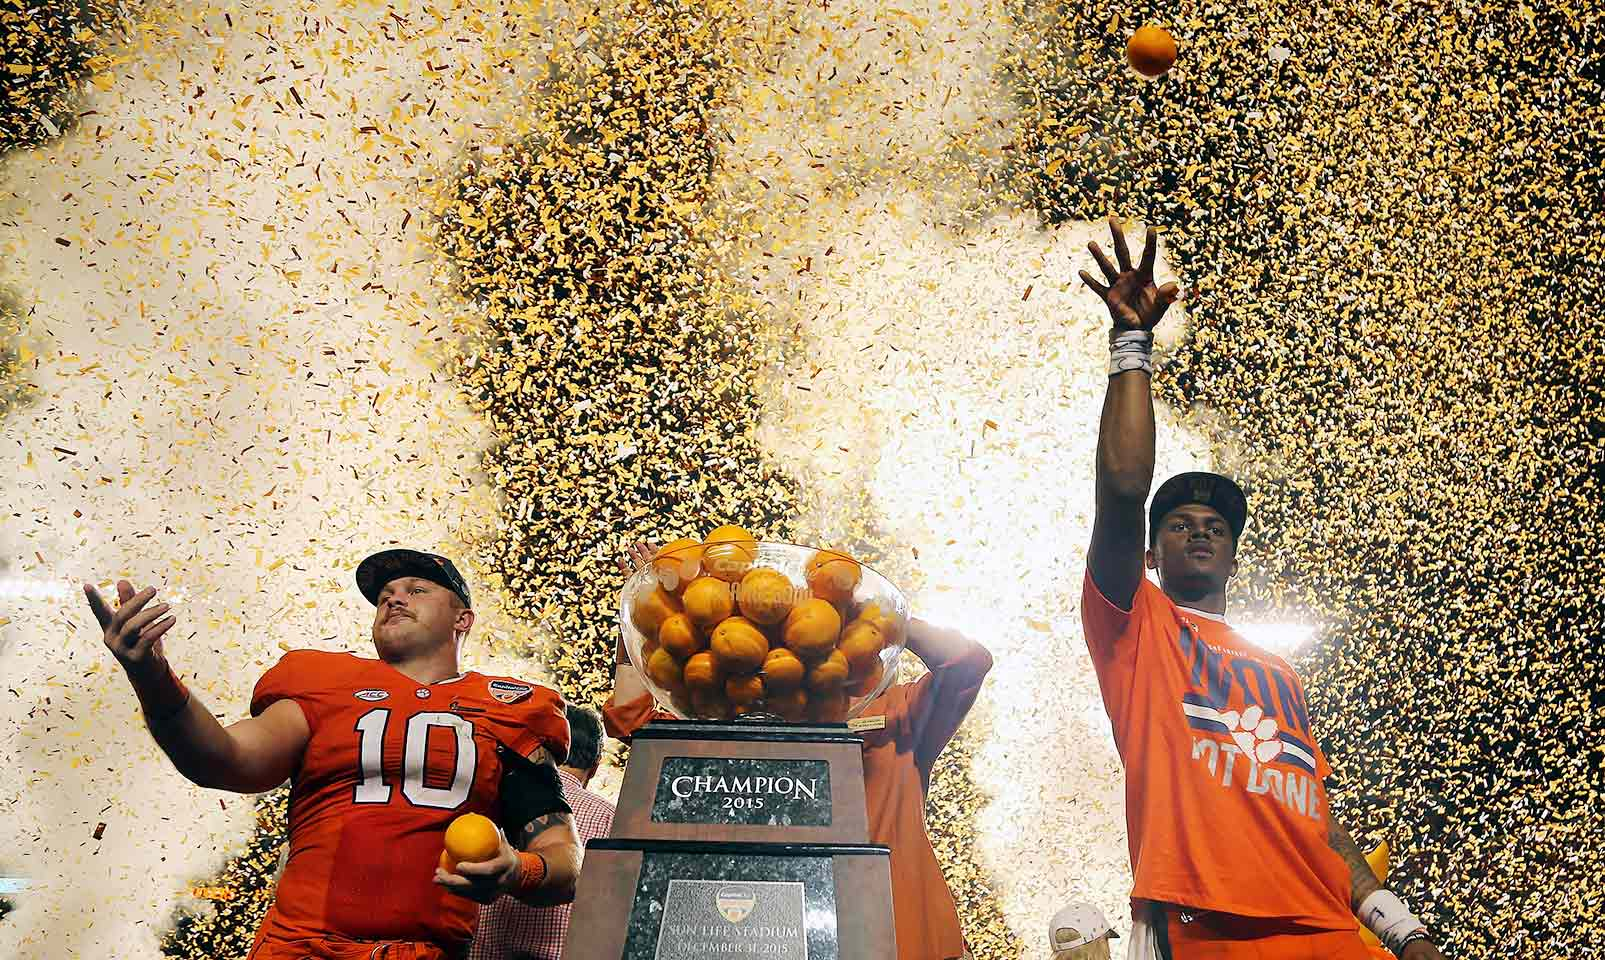 Clemson 37, Oklahoma 17: The Tigers piled on 312 rushing yards while limiting the Sooners to just 67 in the Orange Bowl. Clemson blanked Oklahoma in the second half to pull away for the win and advance to the national championship game.